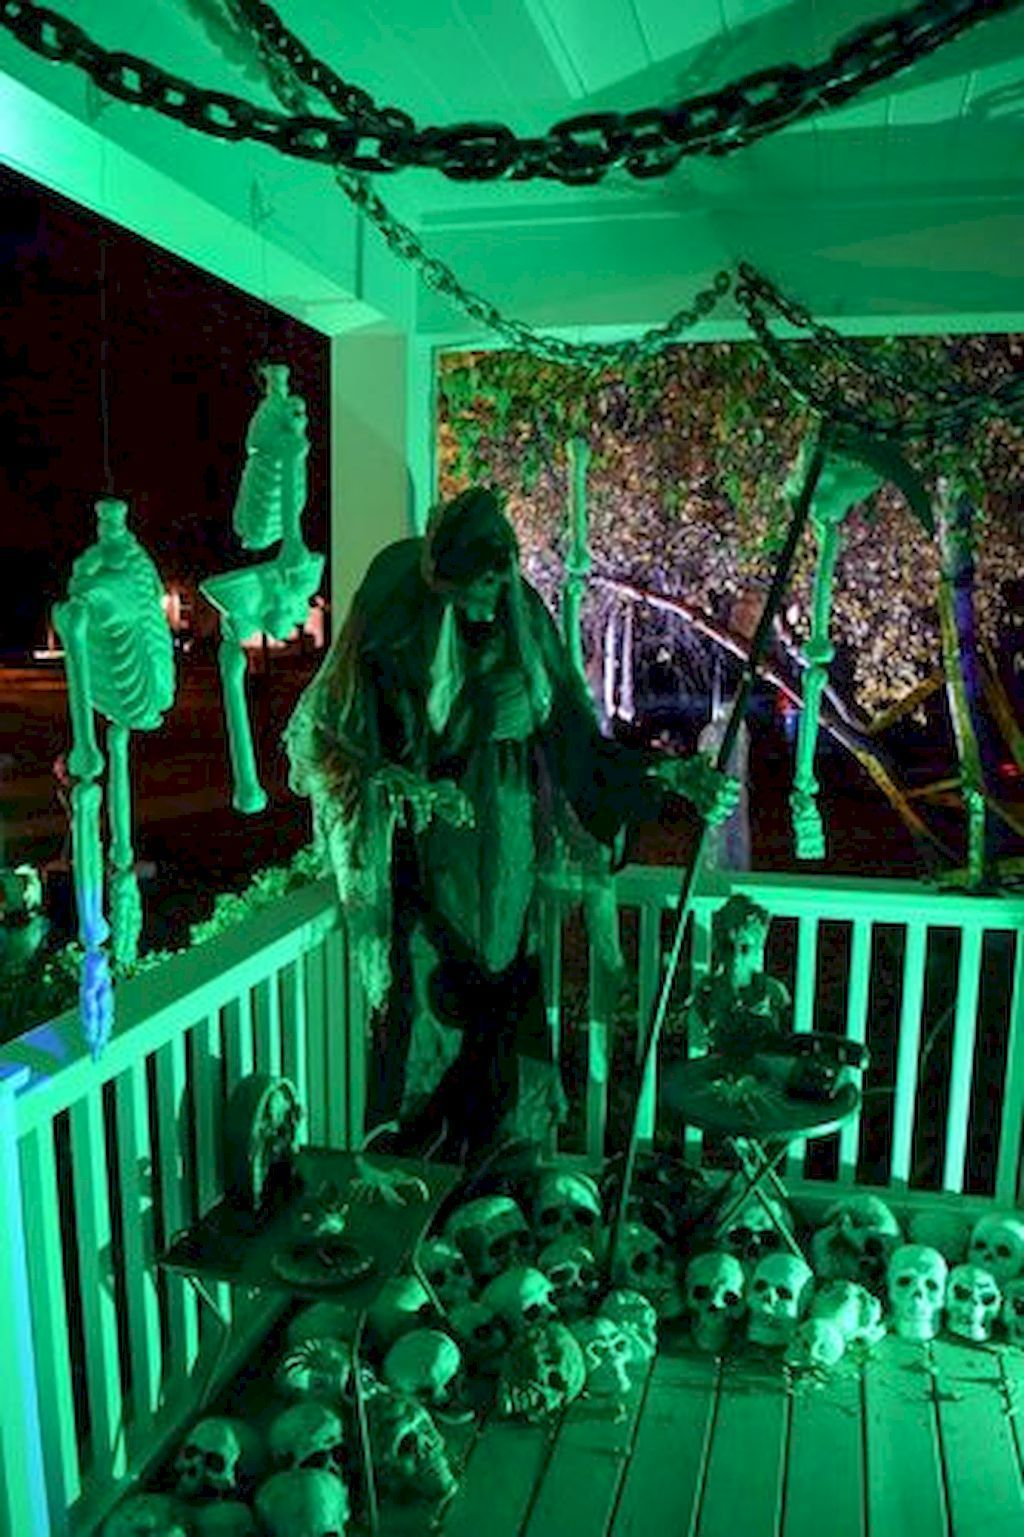 80 + CREEPY OUTDOOR HALLOWEEN DECORATION IDEAS (12 Alice - Pinterest Outdoor Halloween Decorations